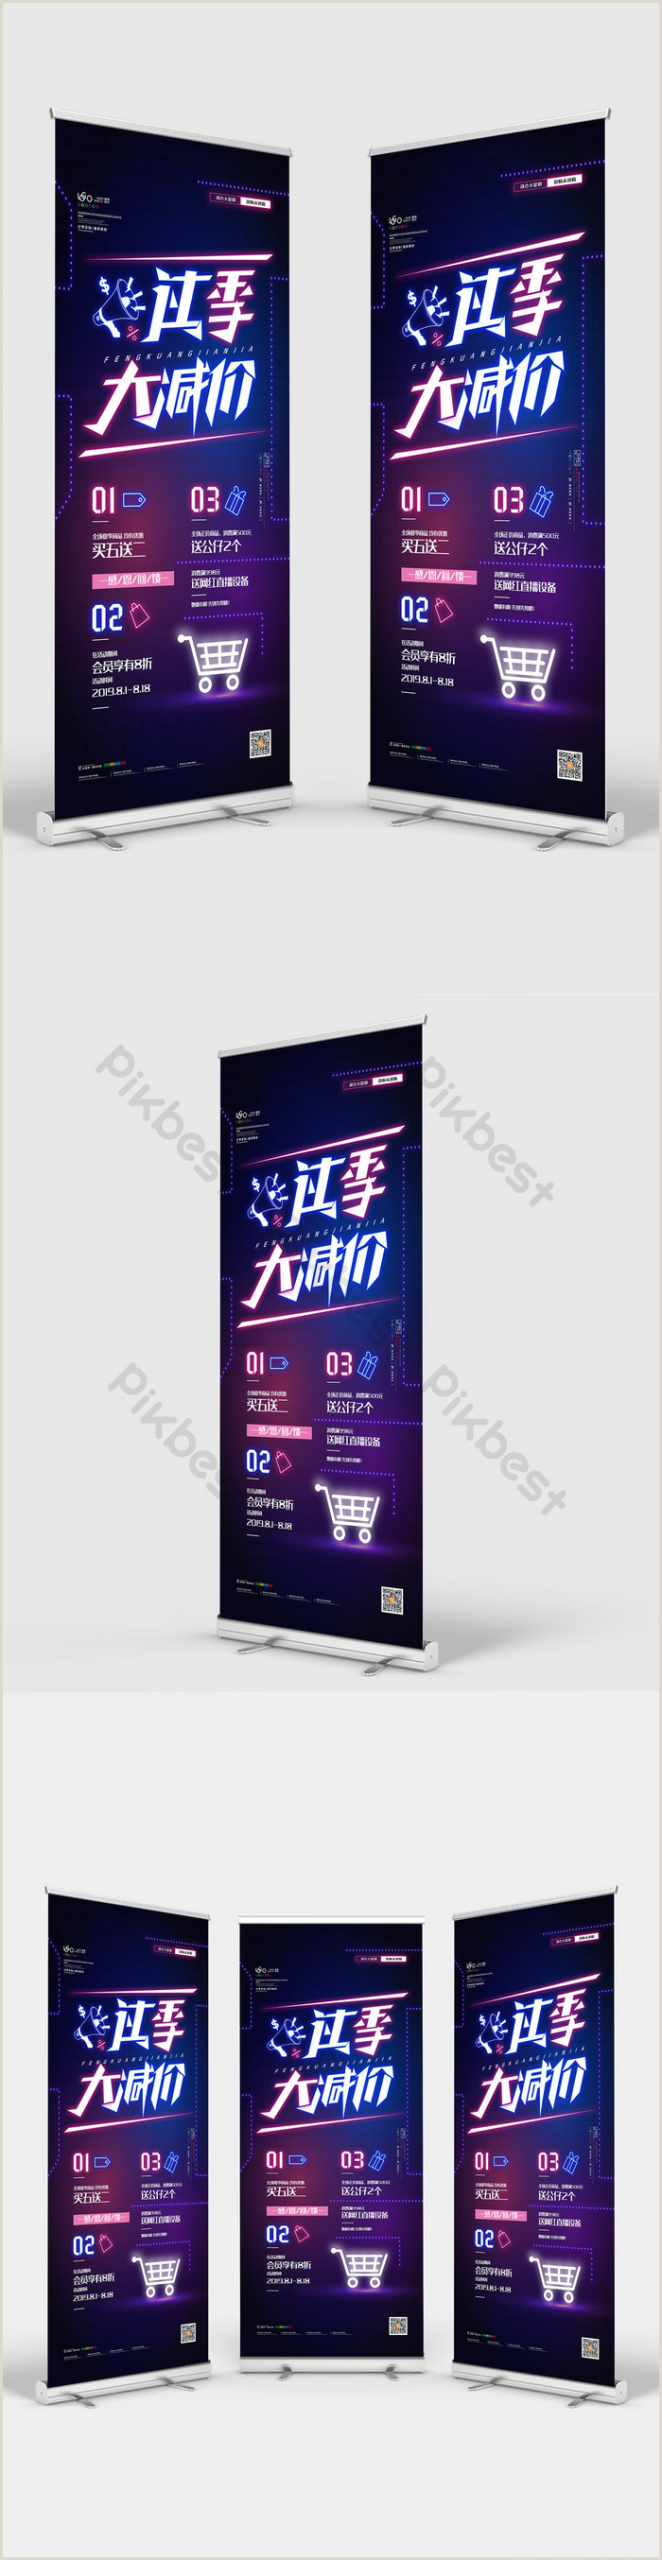 Promo Banner Stands Neon Light Off Season Sale Roll Up Standee Promotion Display